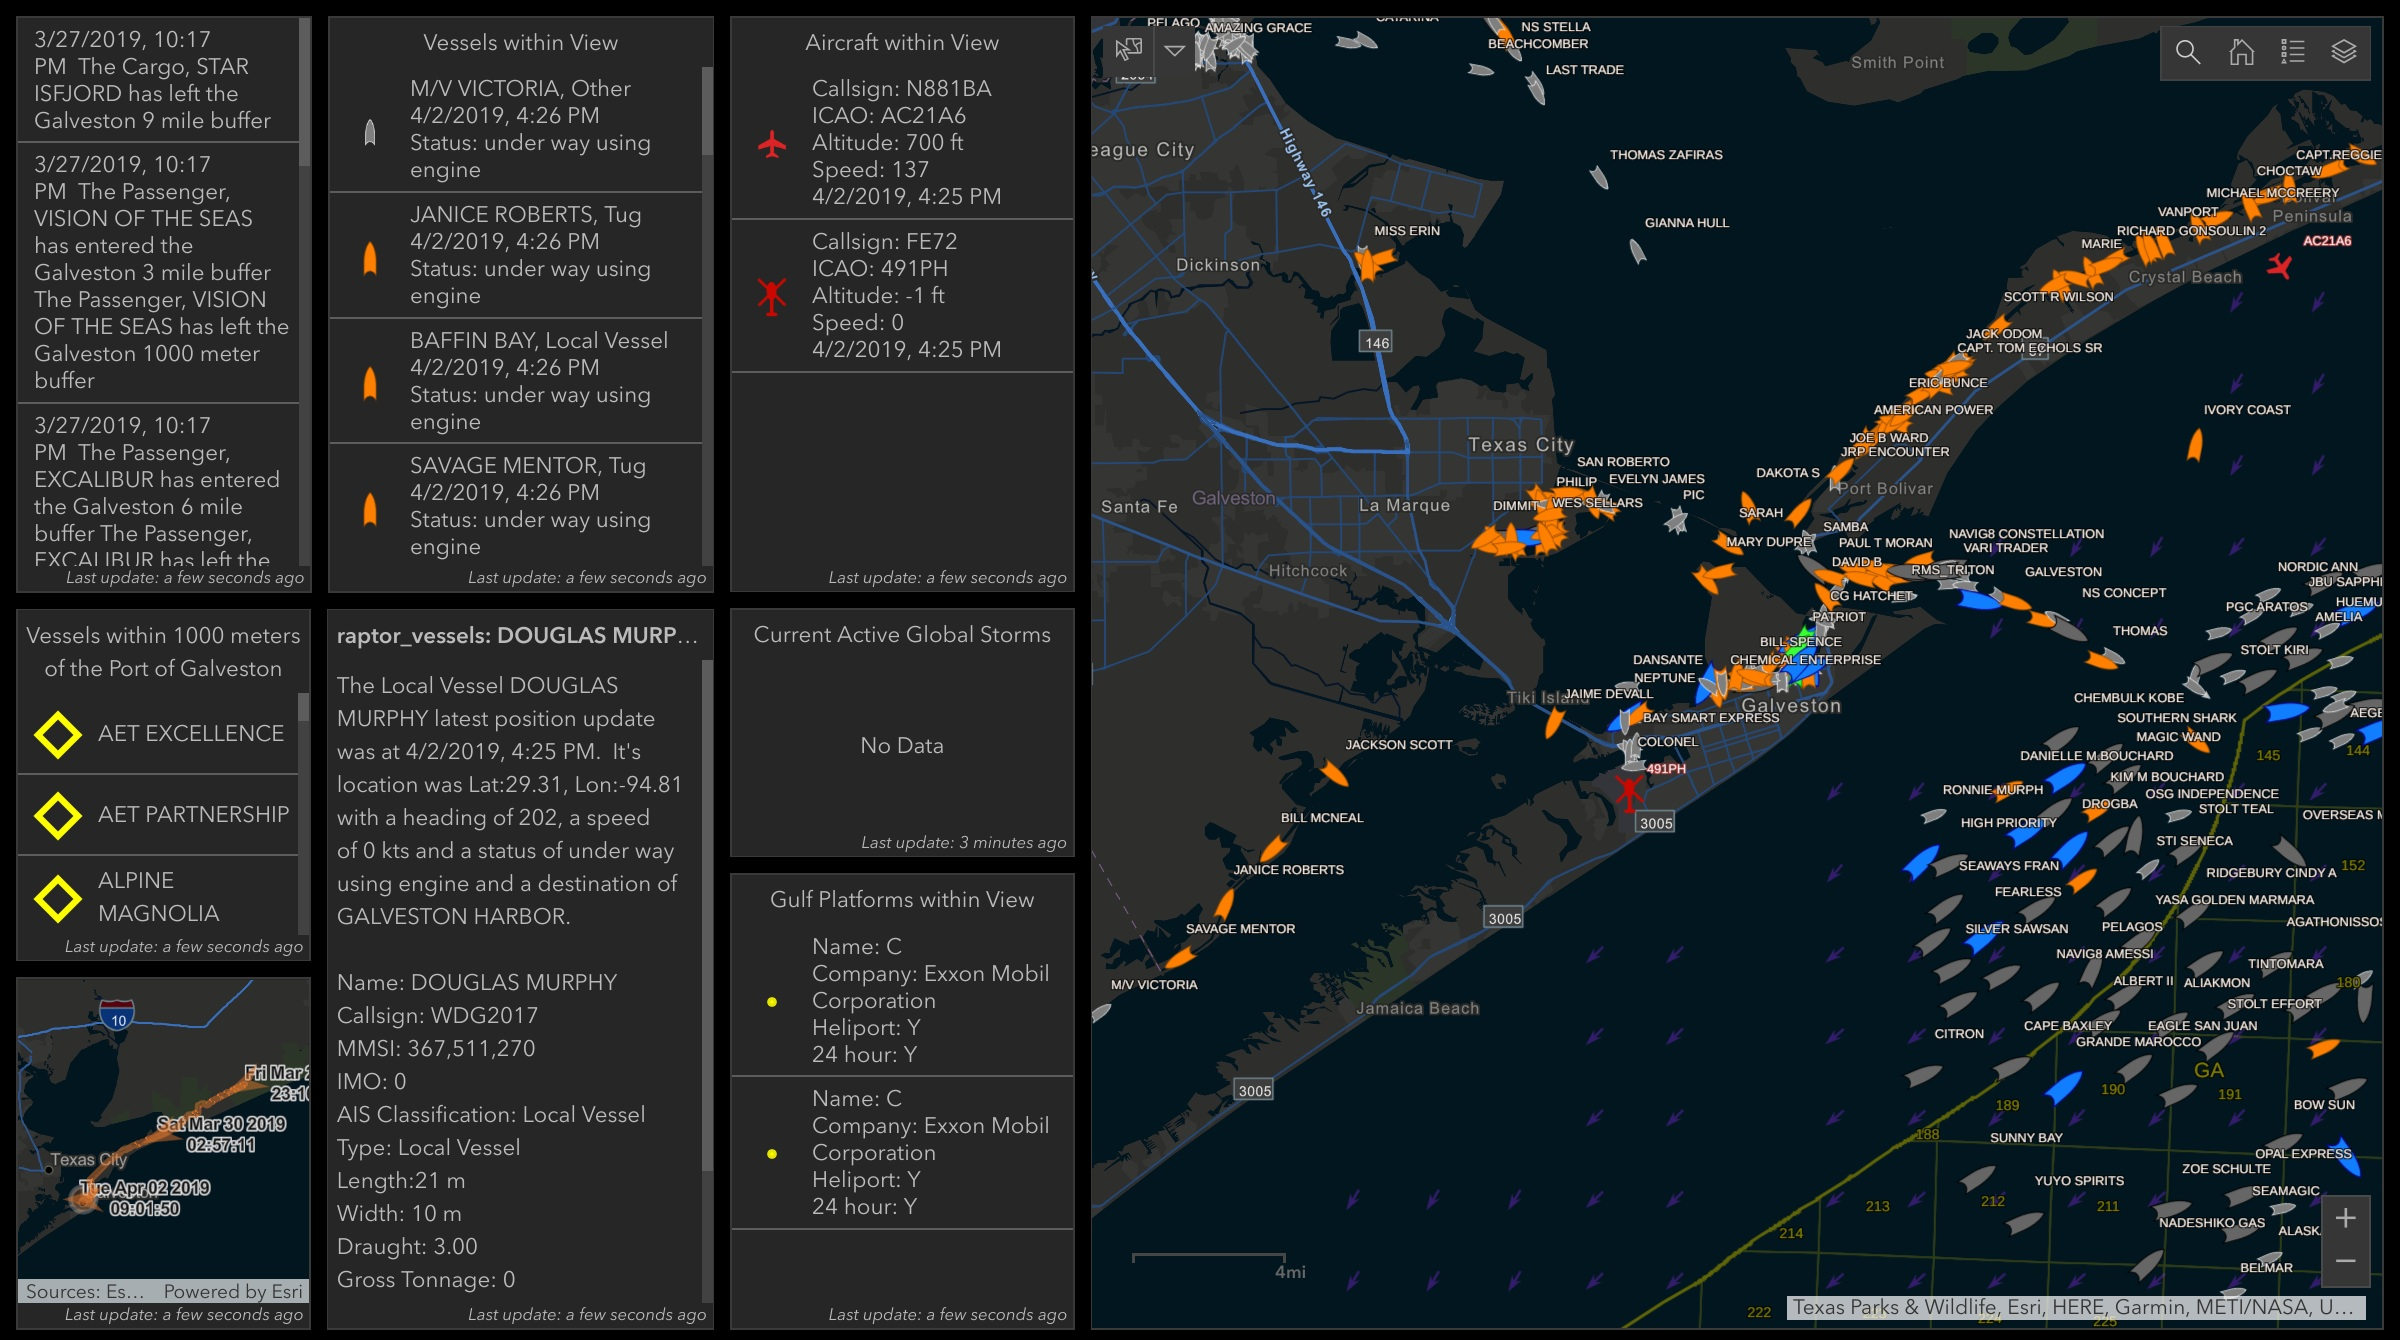 Raptor Geo-IoT services inside of esri's Operations Dashboard in ArcGIS Online. This shows geofence and realtime vessel capabilties at the Port of Galveston The AIS vessel information is provided by Spire (spire.com)